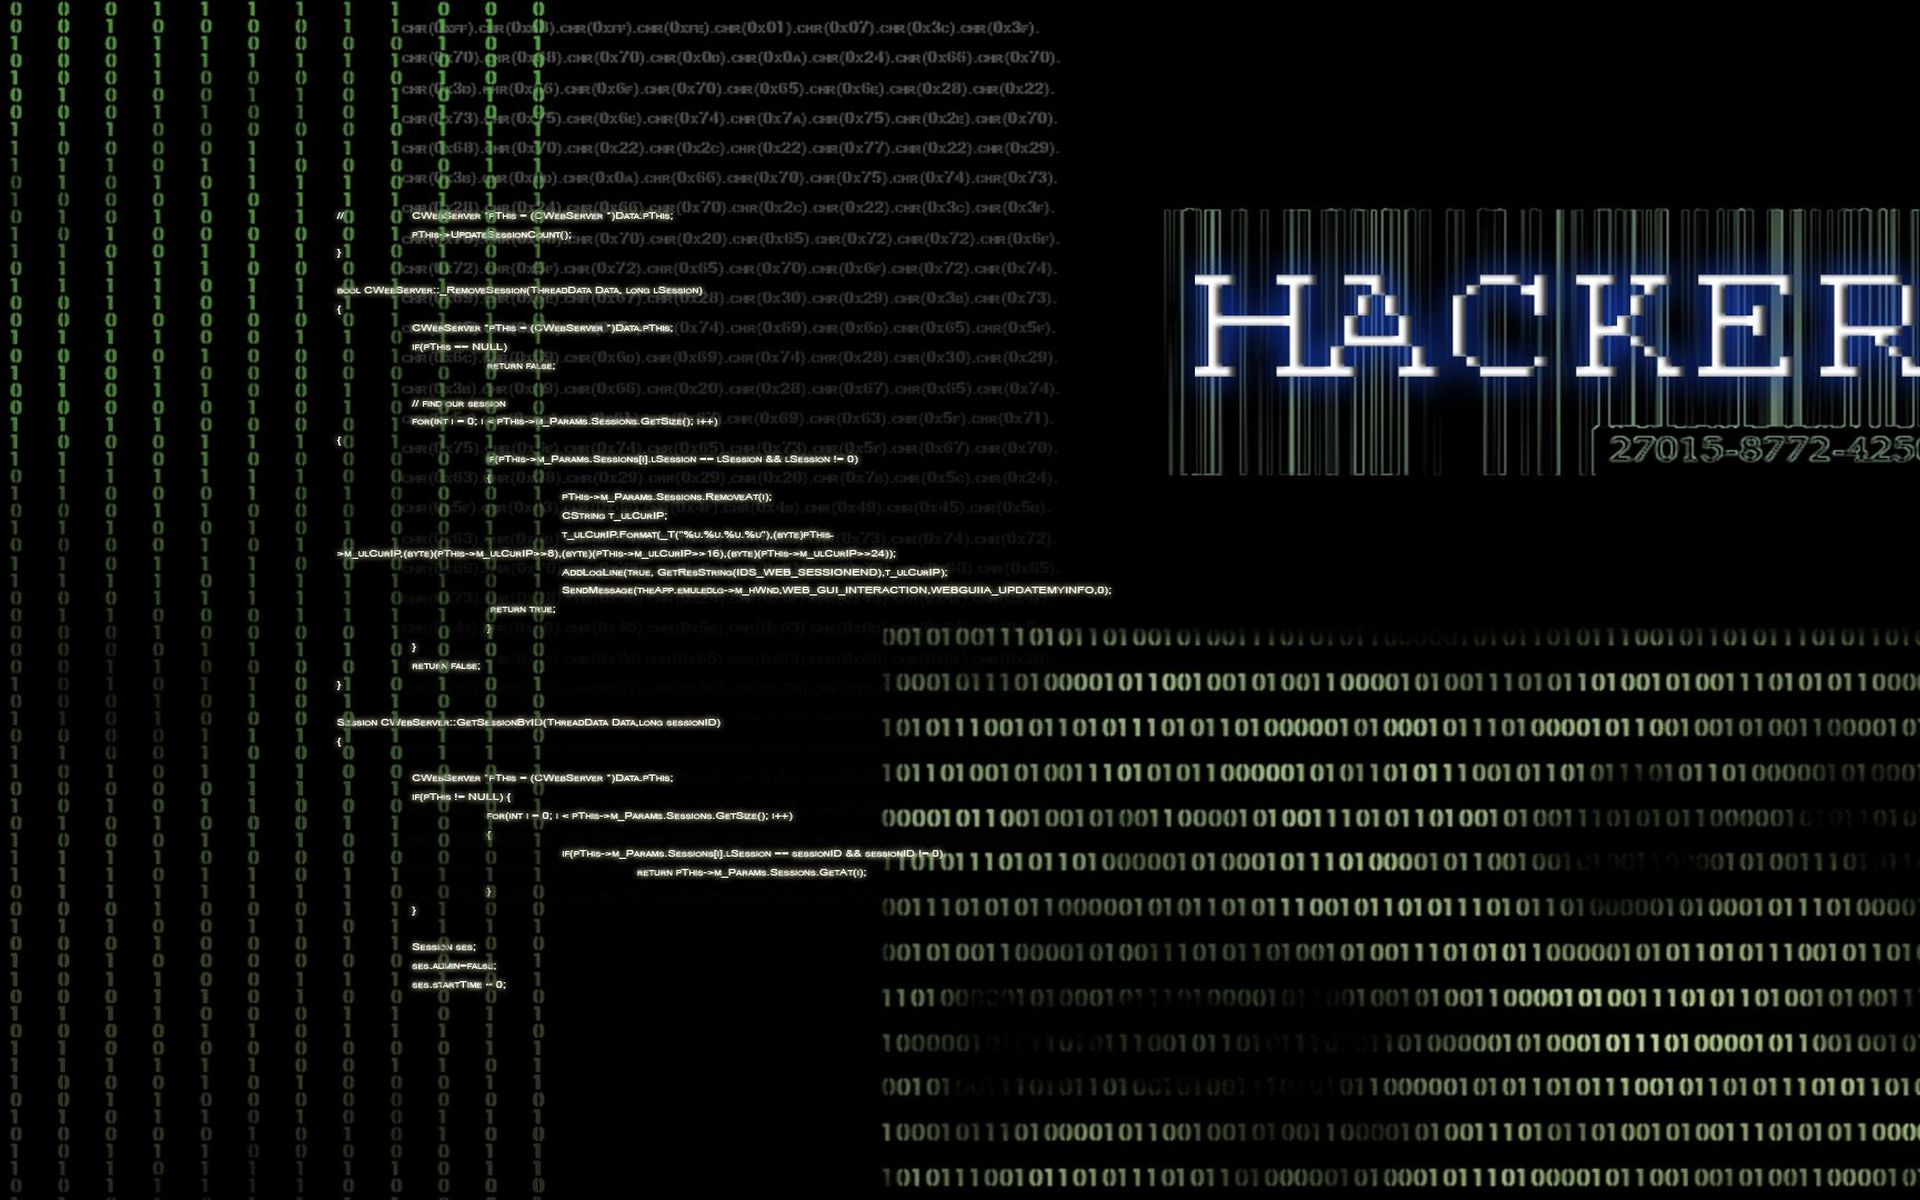 Hacker Background Picture Image 1920x1200